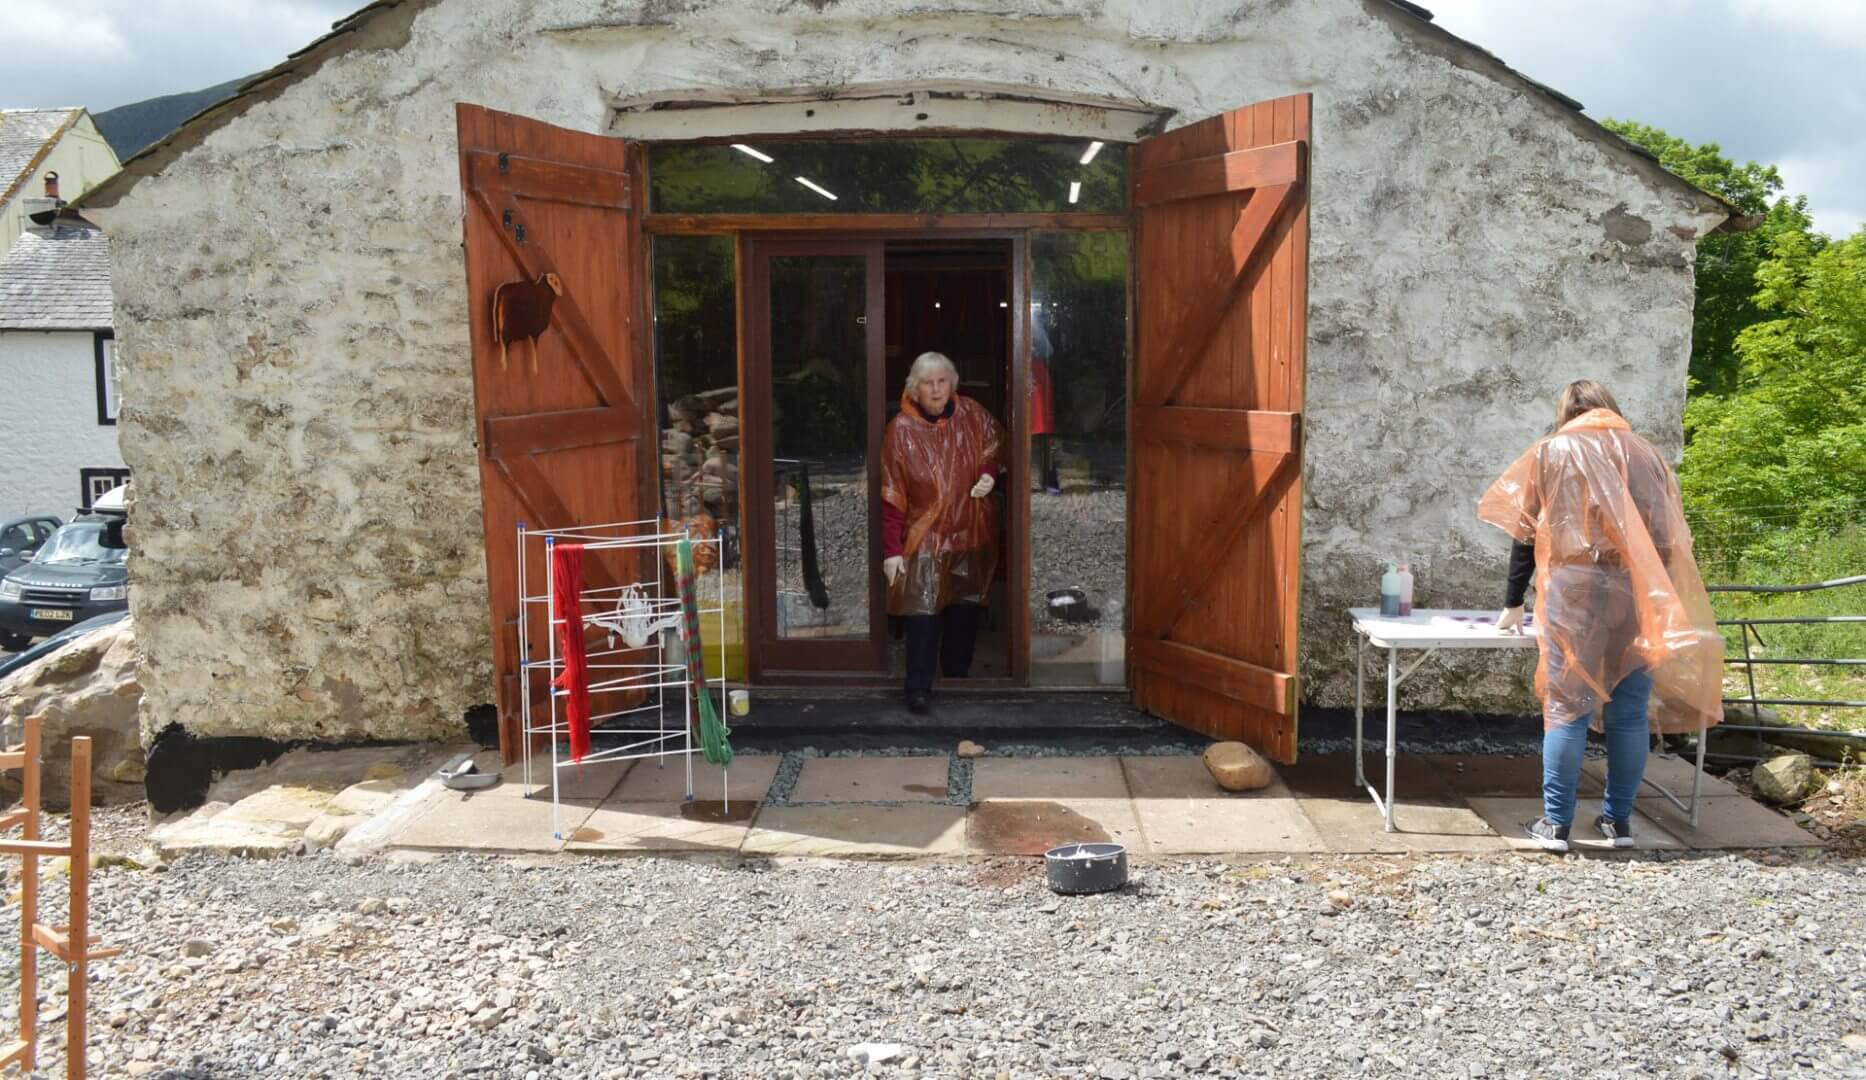 The Wild Wool Barn - dog friendly - group accommodation - Lake District National Park - NCN